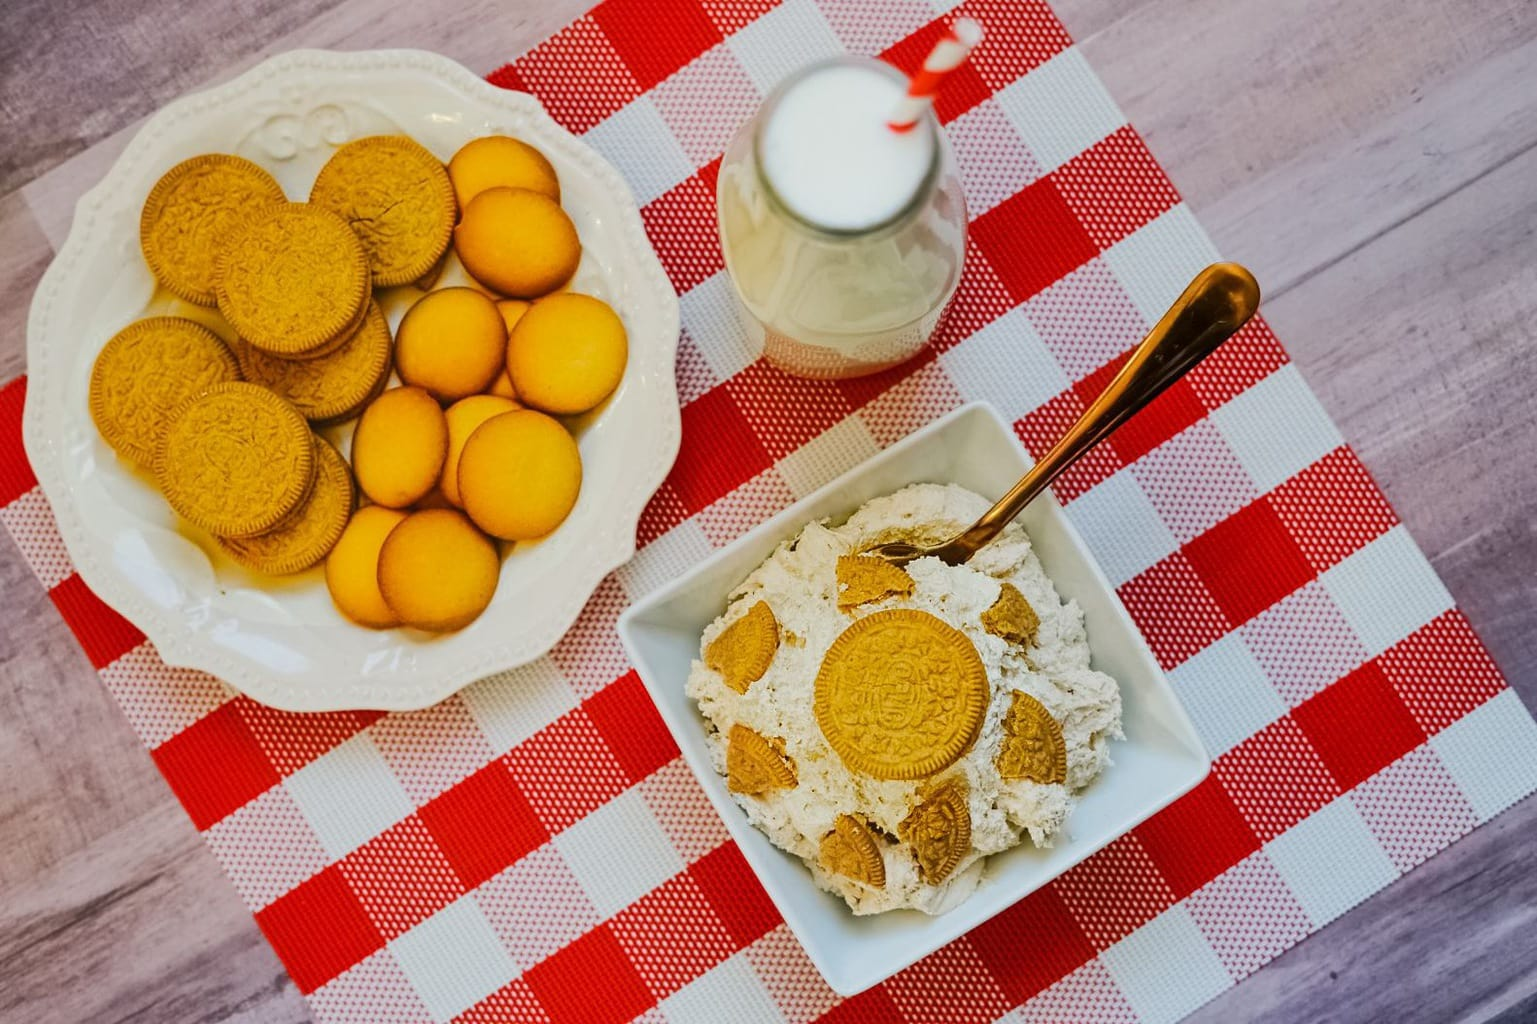 picture of cheesecake dip with carrot cake Oreos and milk on a checkered tablecloth